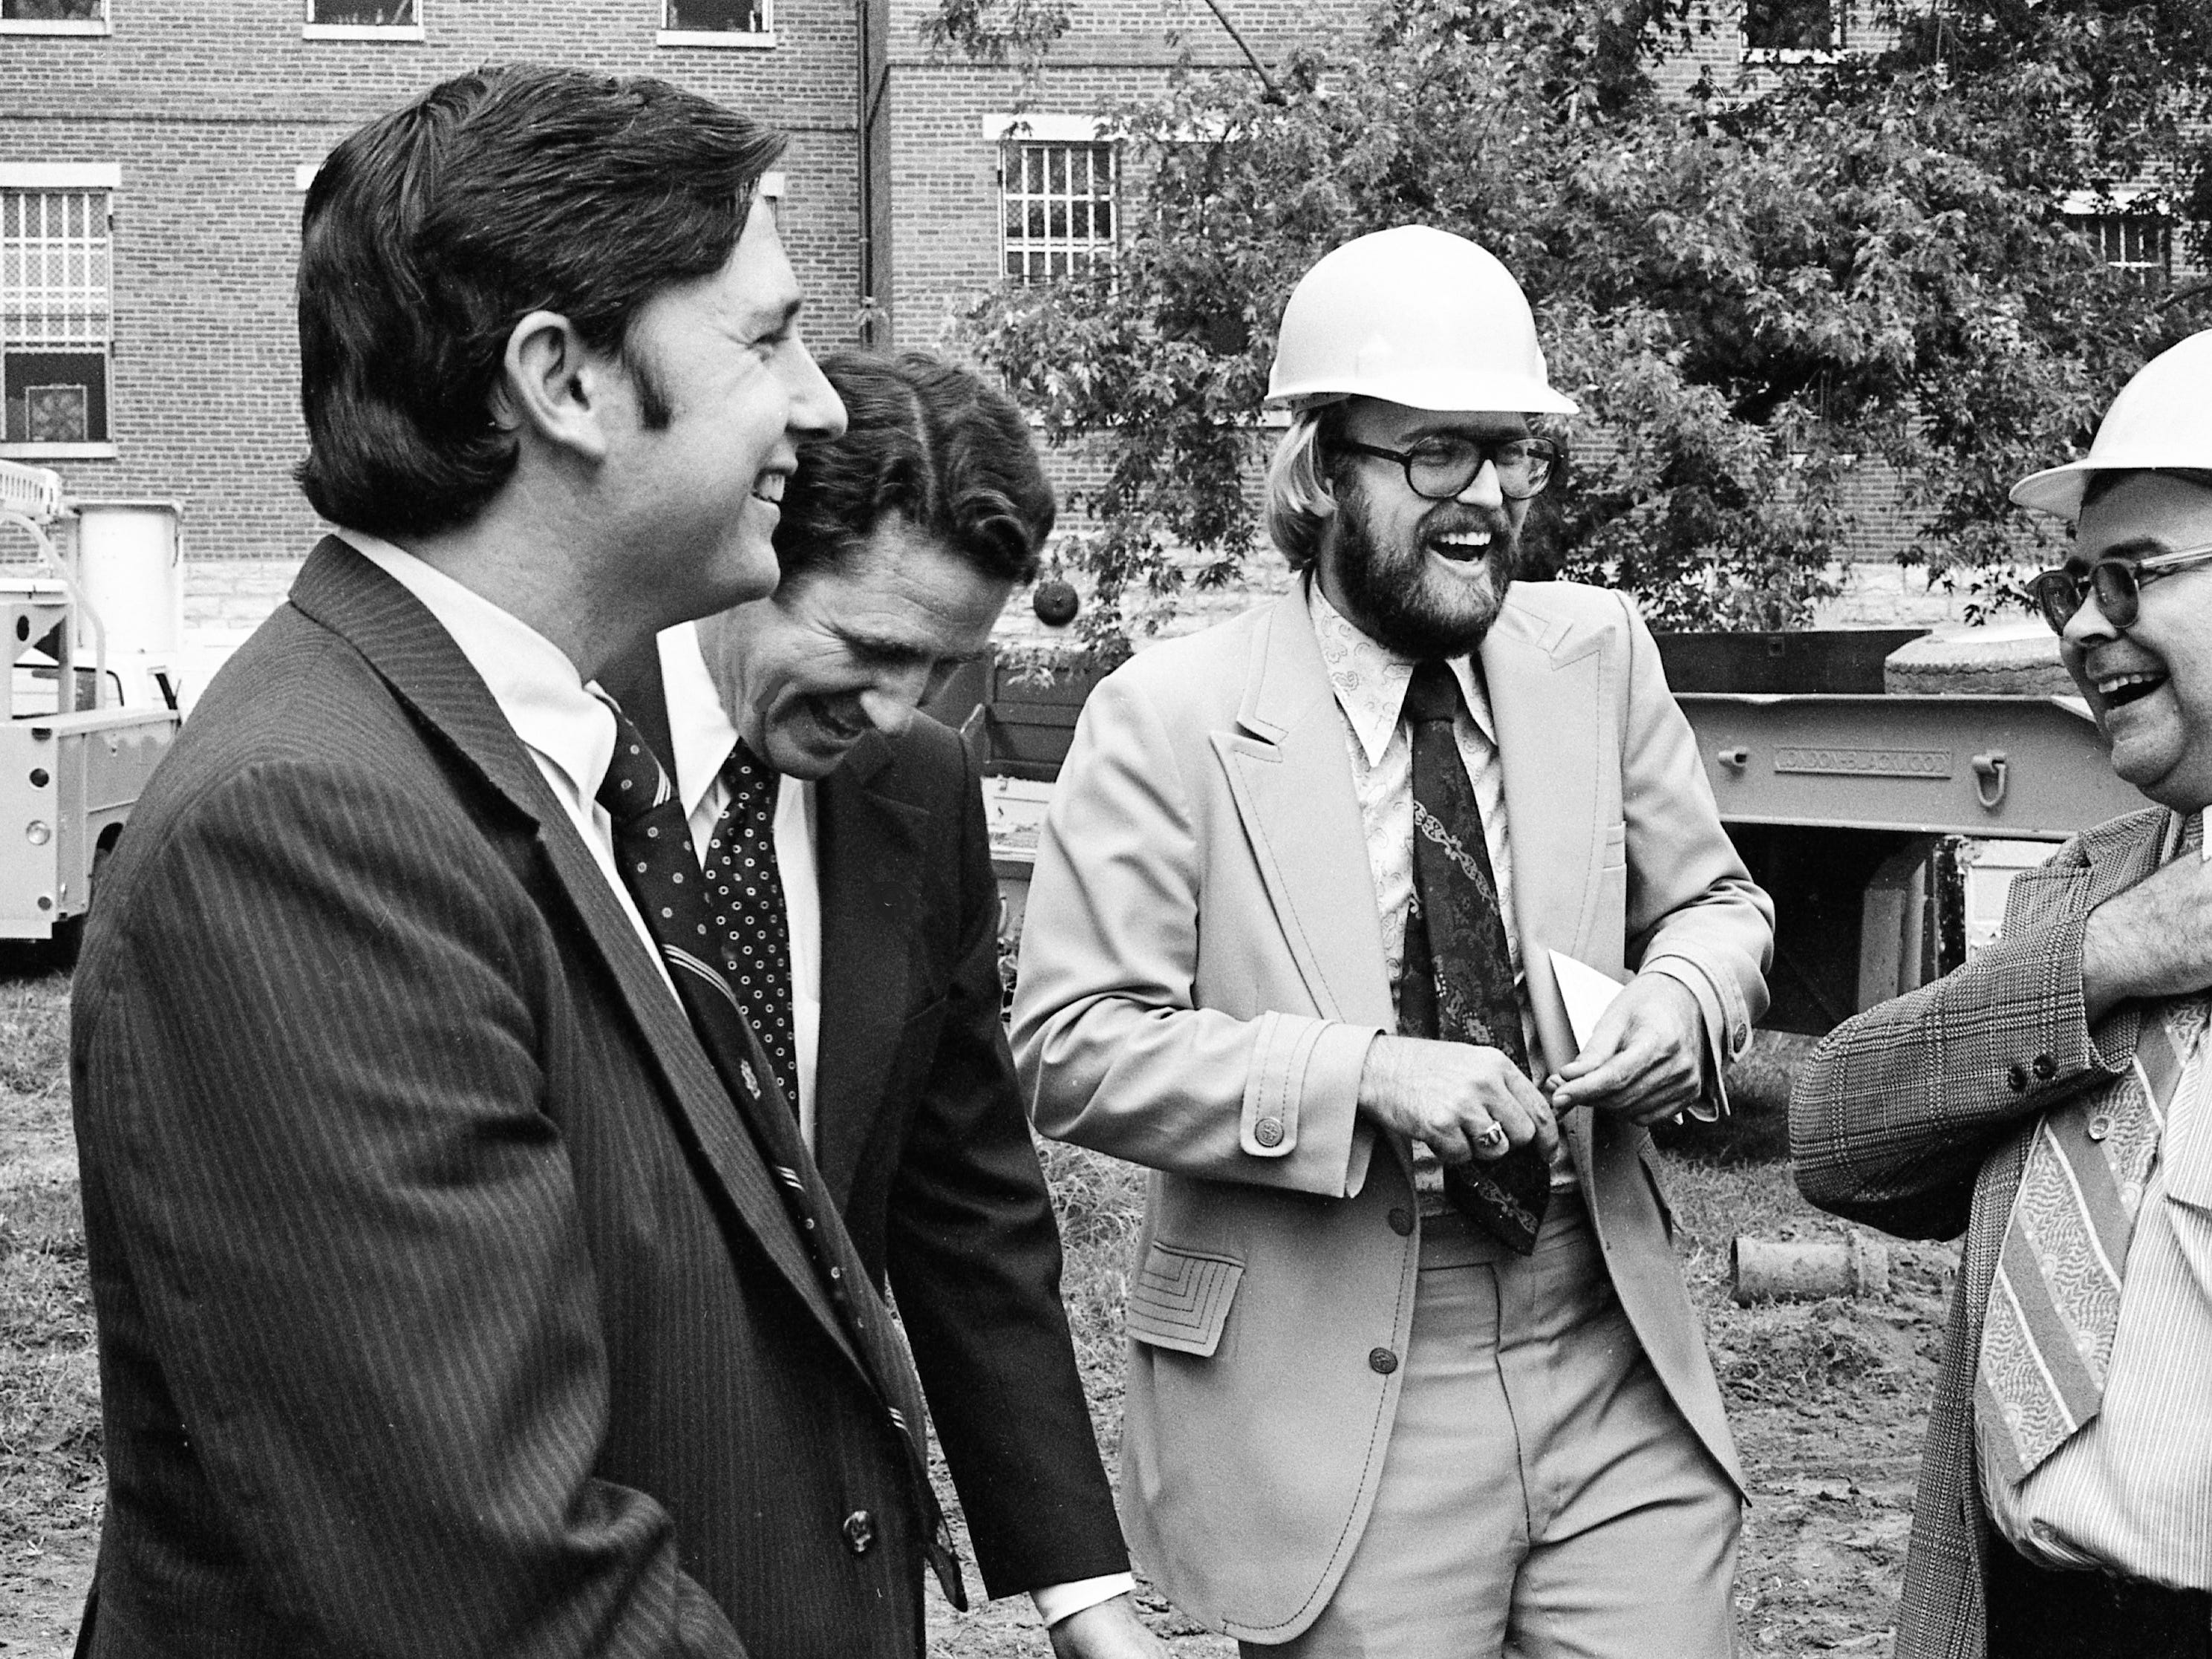 Tennessean reporter Frank Sutherland, second from right, laughs with Gov. Winfield Dunn, center, at a ceremony marking the first phase of the demolition of several wings in the Farmer Complex of the Central State Psychiatric Hospital on Aug. 8, 1974. For 31 days, Sutherland posed as a patient at the hospital to observe conditions firsthand.